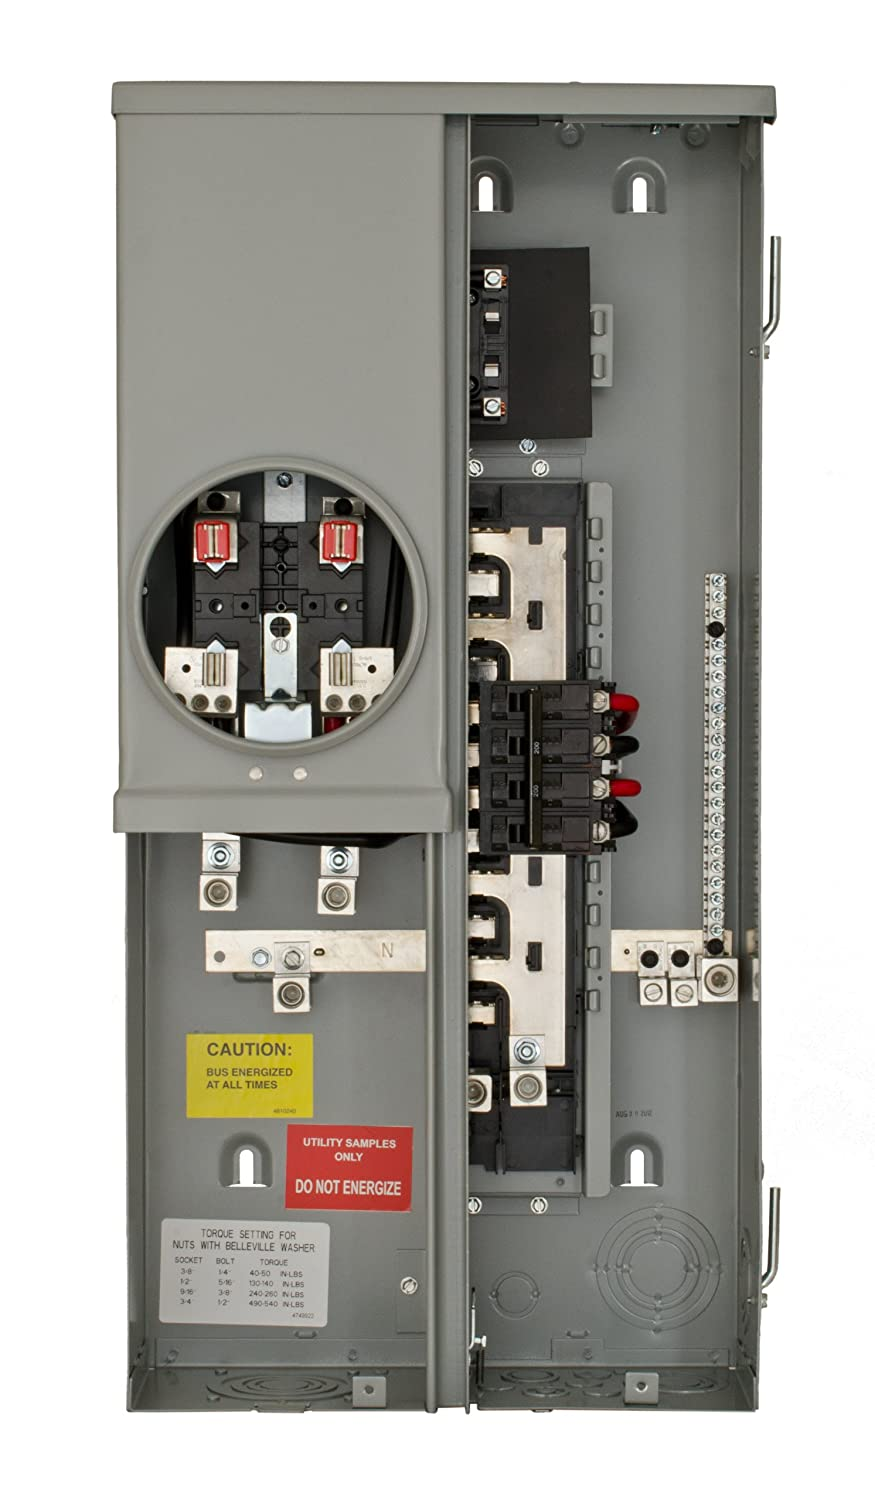 Siemens MC0816B1200ESN 8 Space 16 Circuit 200-Amp Surface Mount Meter Load Center Combo with Feed Thru Lugs Ring Type Cover and Additional 50-Amp Provision